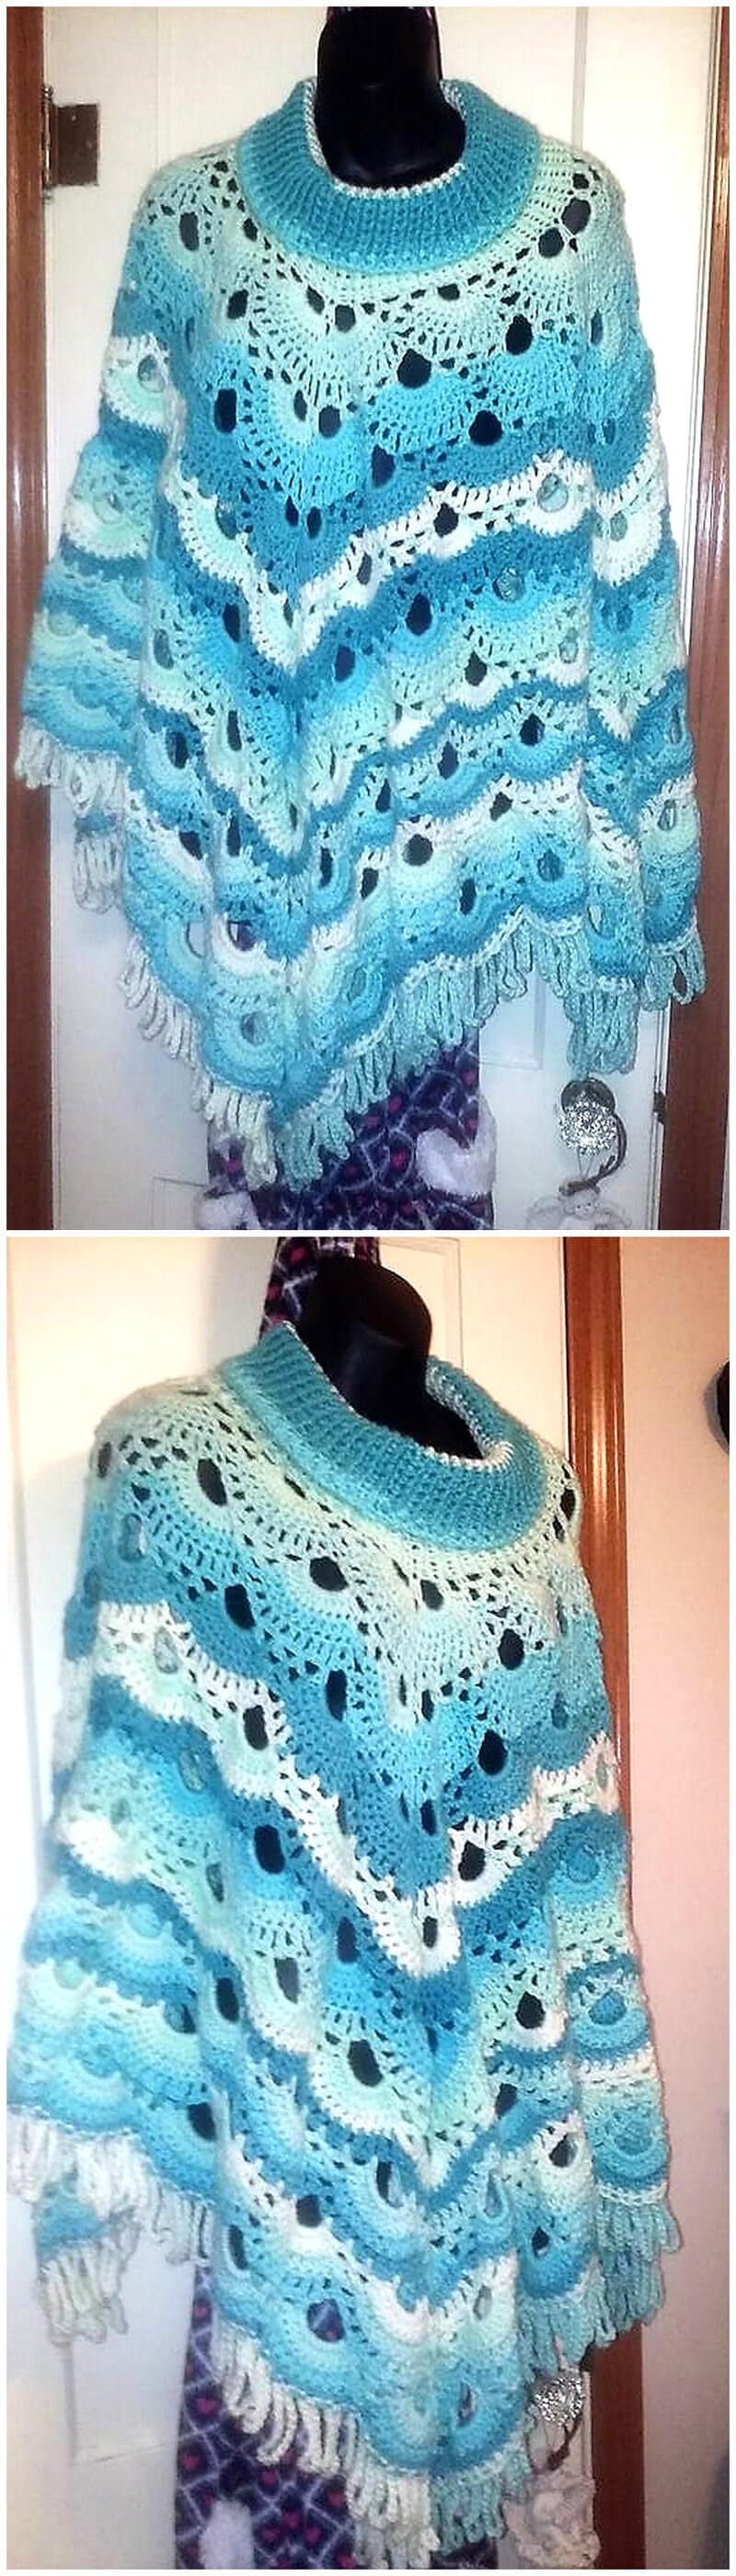 crocheted poncho 2